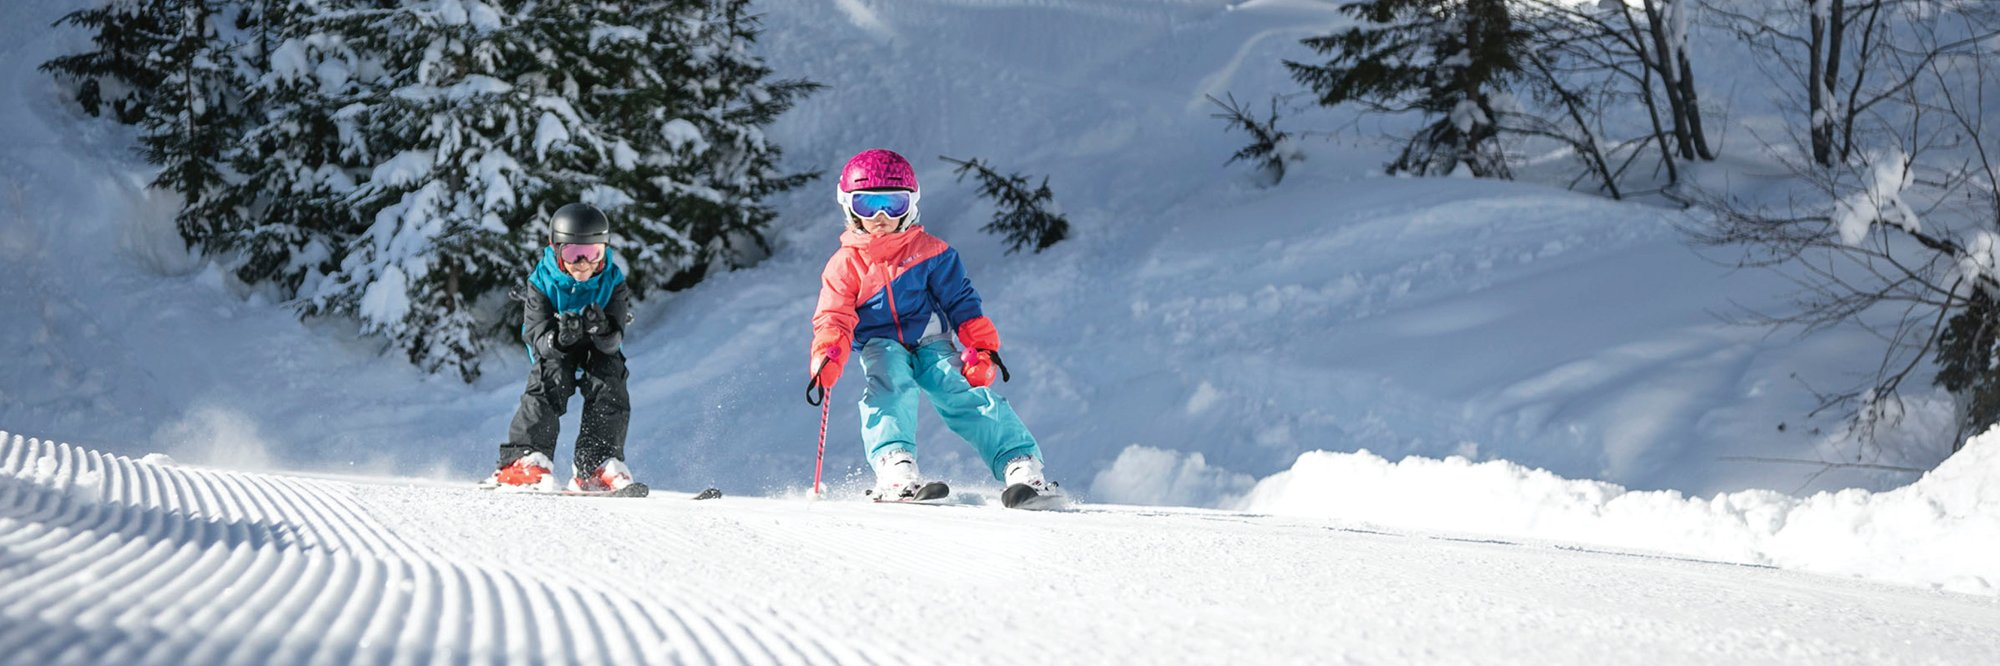 Kids ski boots from HEAD, Alpina, Dalbello, and Tecnica for sale at our West Seattle Ski Shop